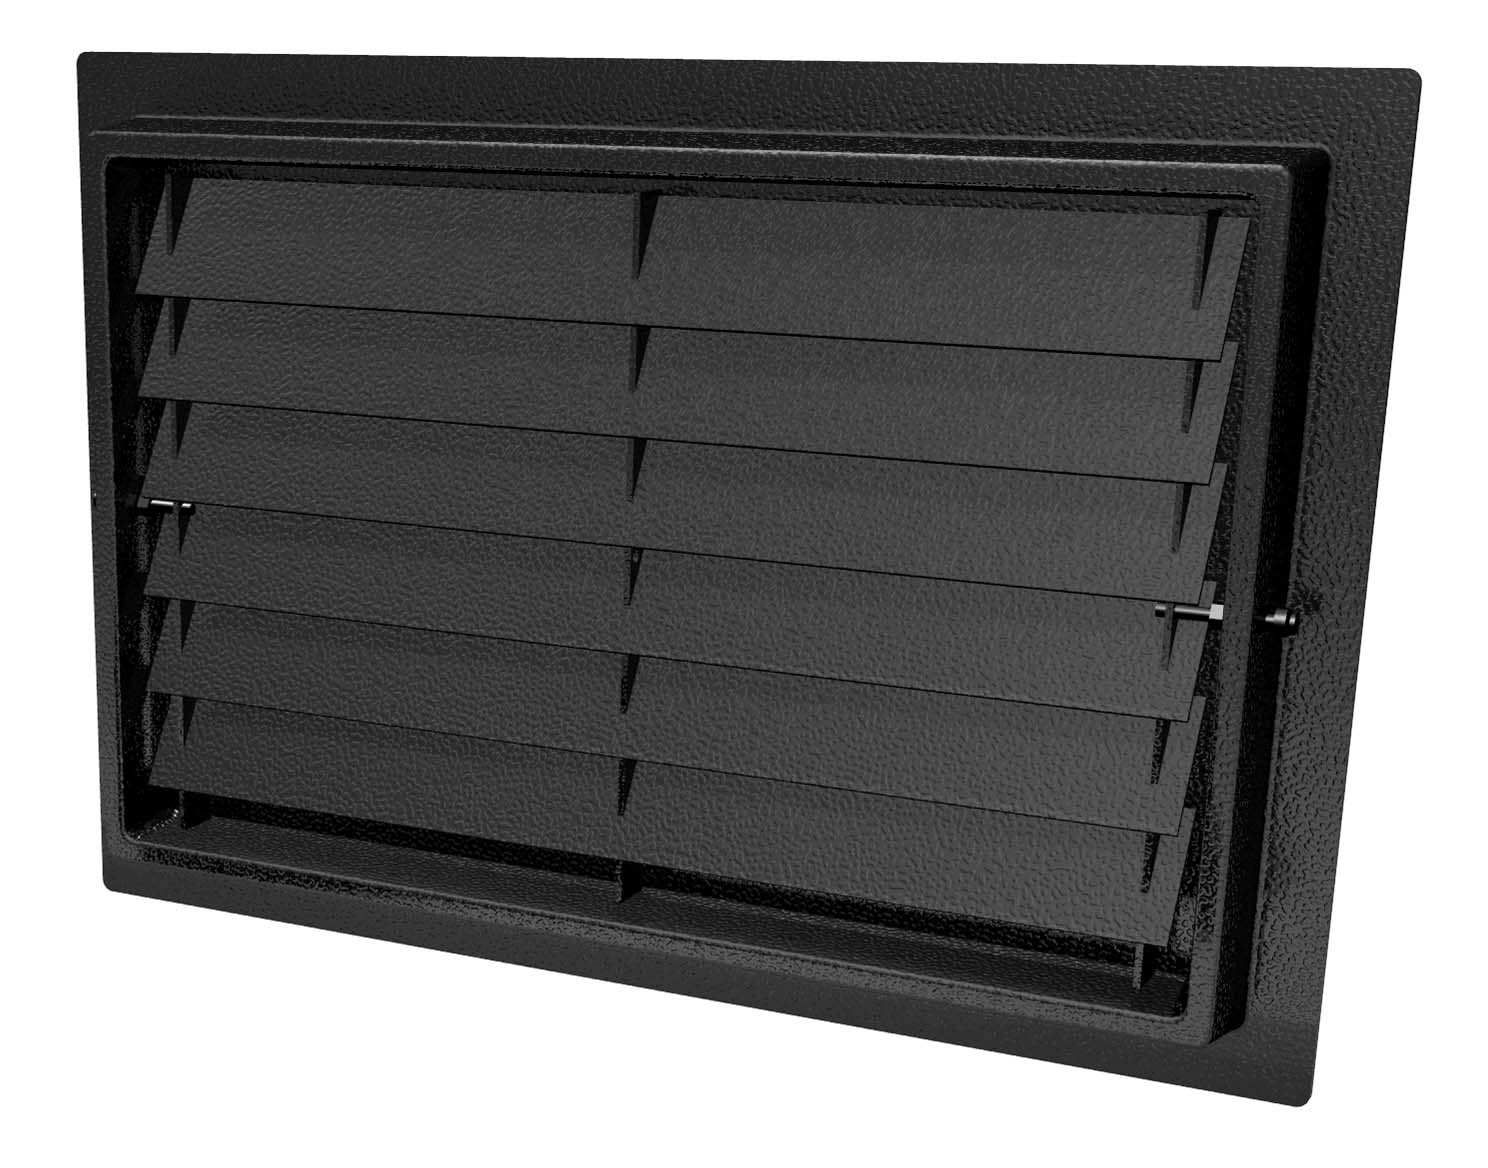 Air Vents and Foundation Vent Covers. www.crawlspacedoors.com #666666